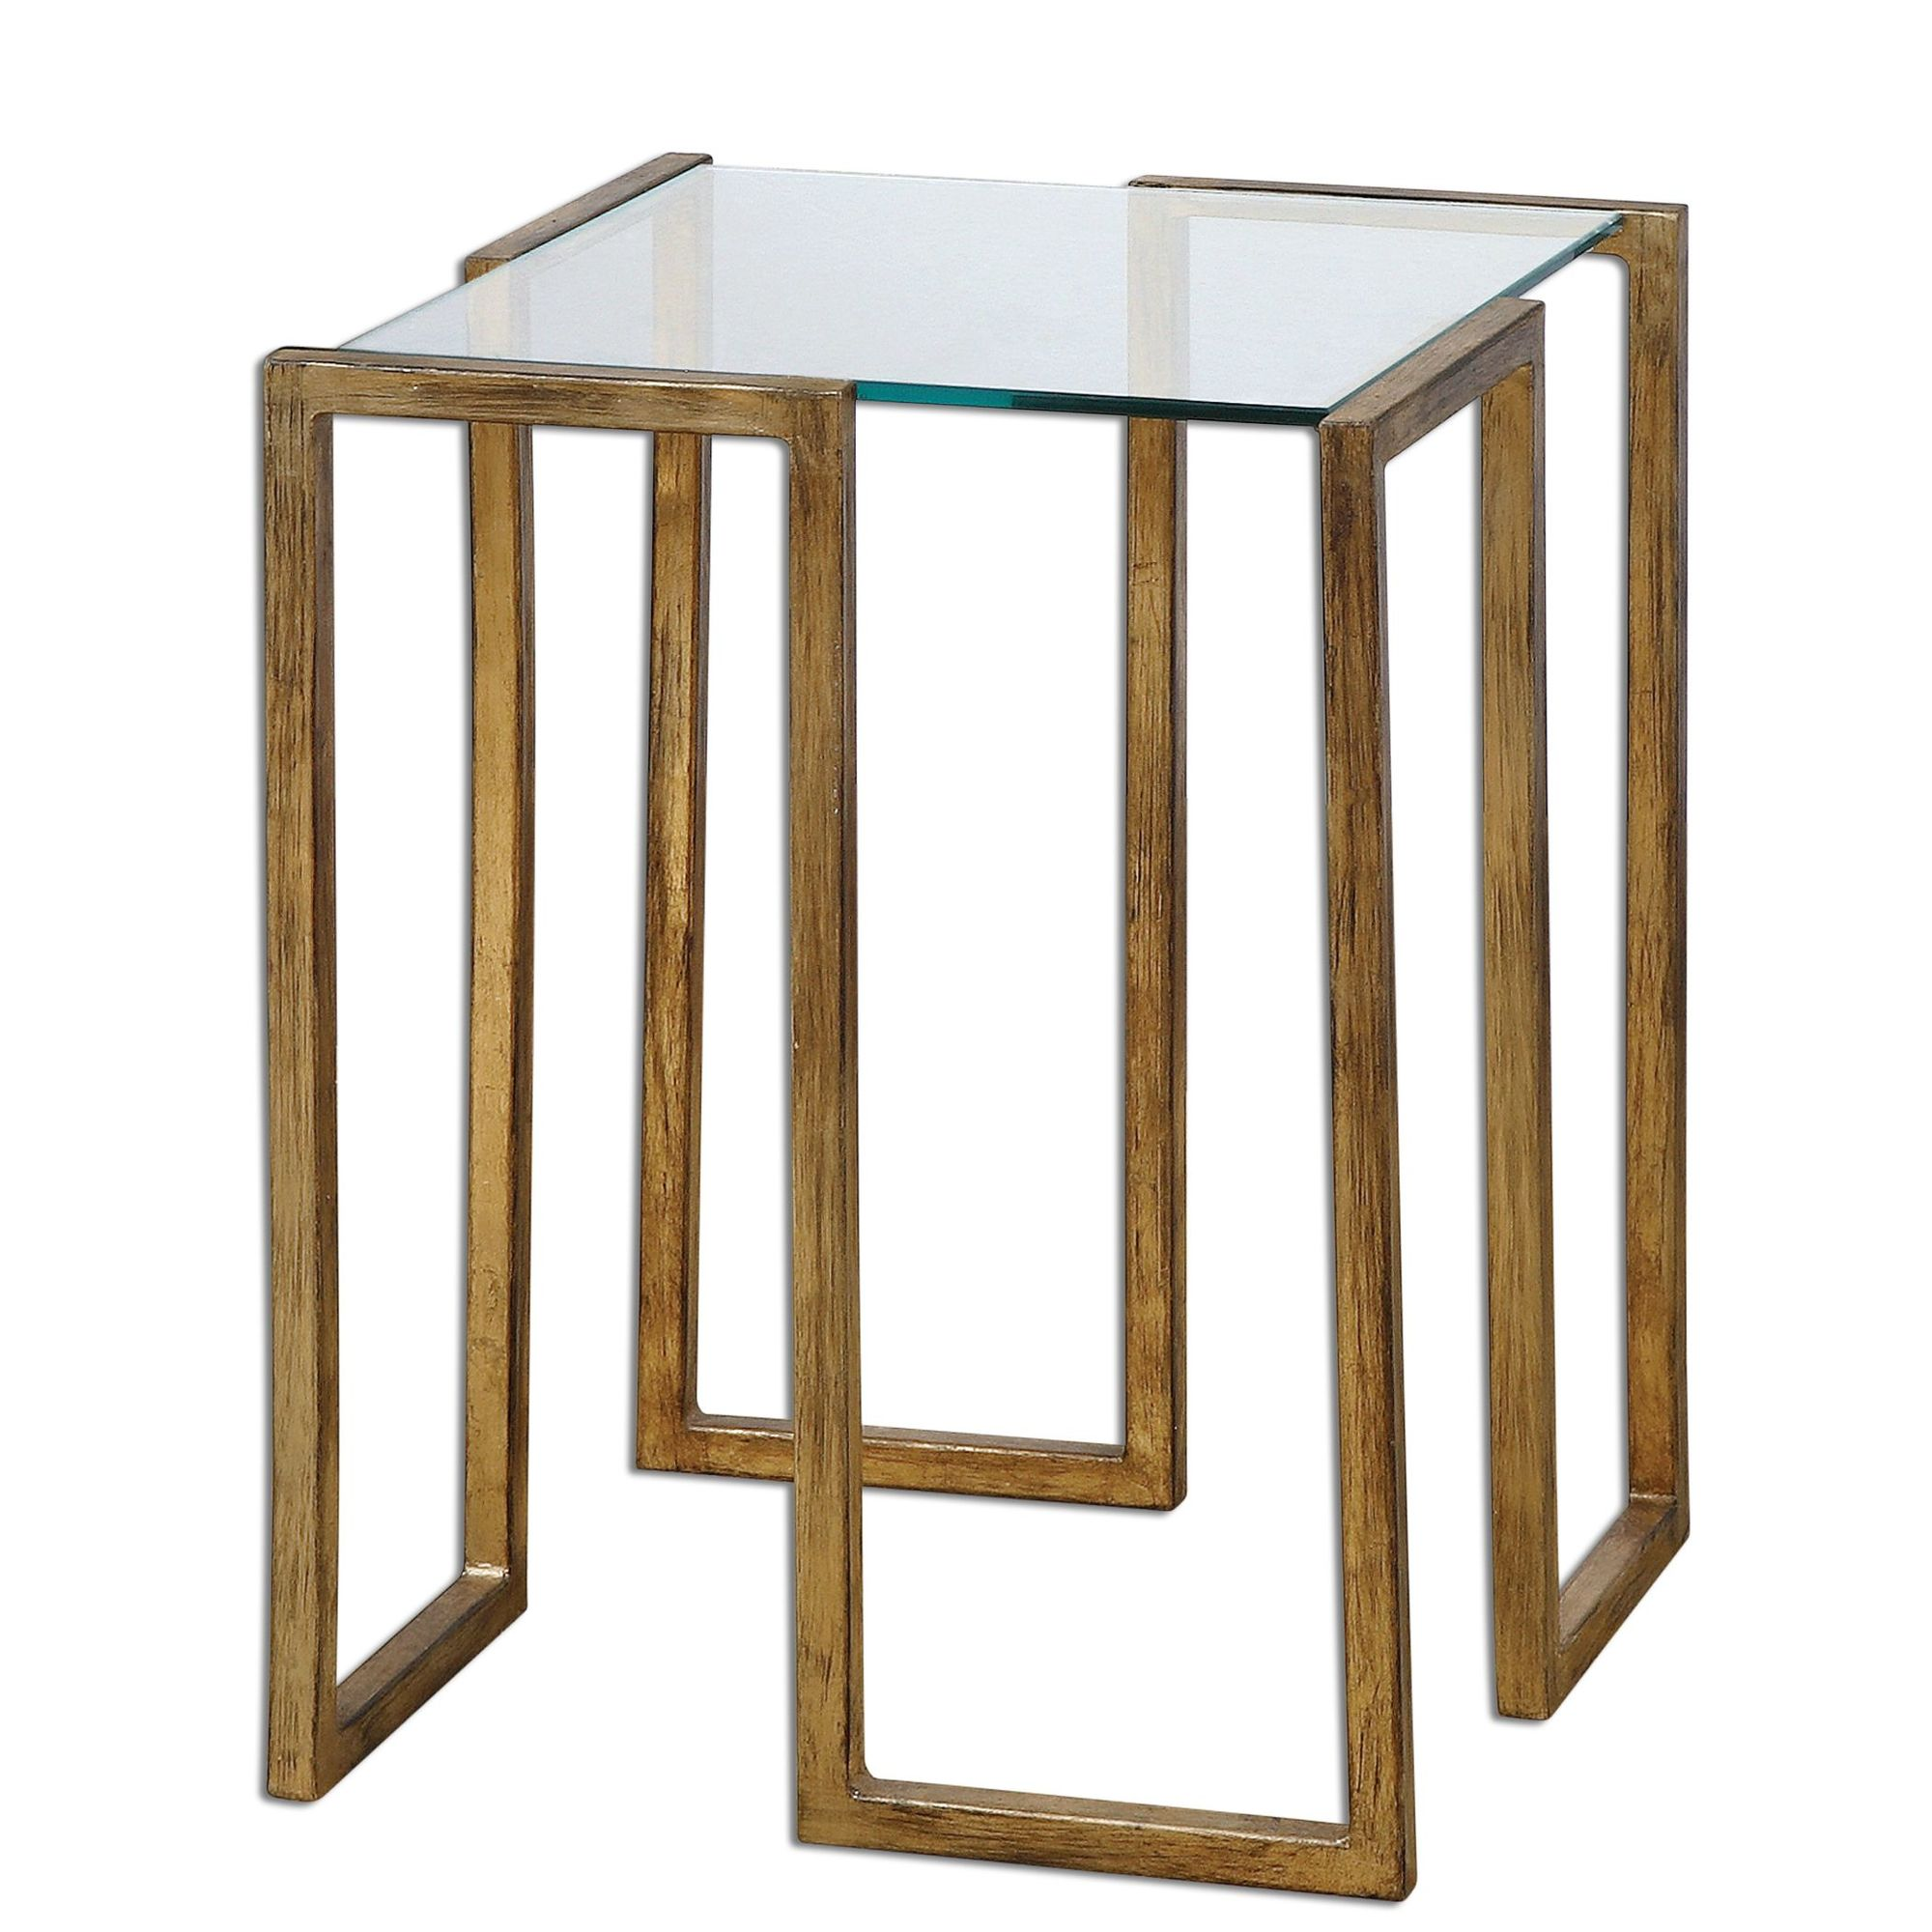 glass top accent table antique gold leaf mathis brothers furniture tall end tables target modern lamps black side rope lamp distressed entry home decor tulsa with drawer leather